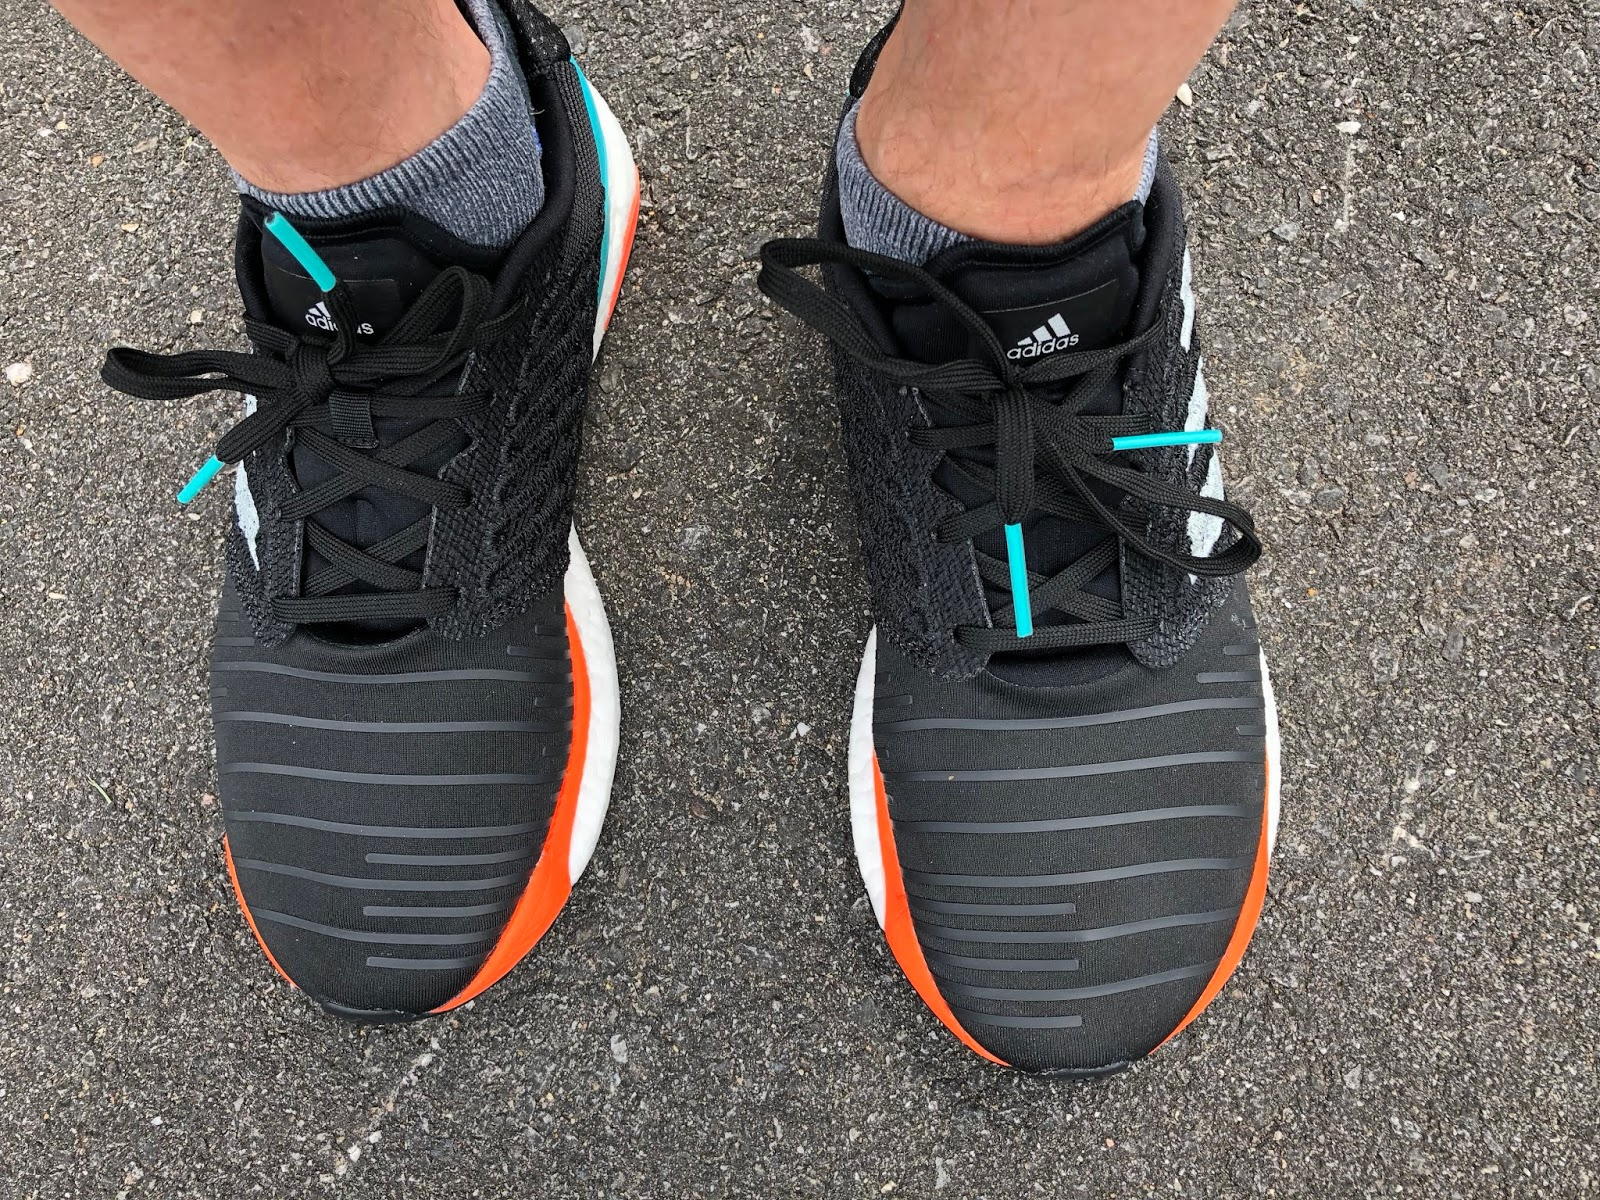 Perdóneme Quinto proteína  Road Trail Run: adidas Solar Boost Initial Review: Splashy Tropical Vibe.  Lively yet Mellow Ride